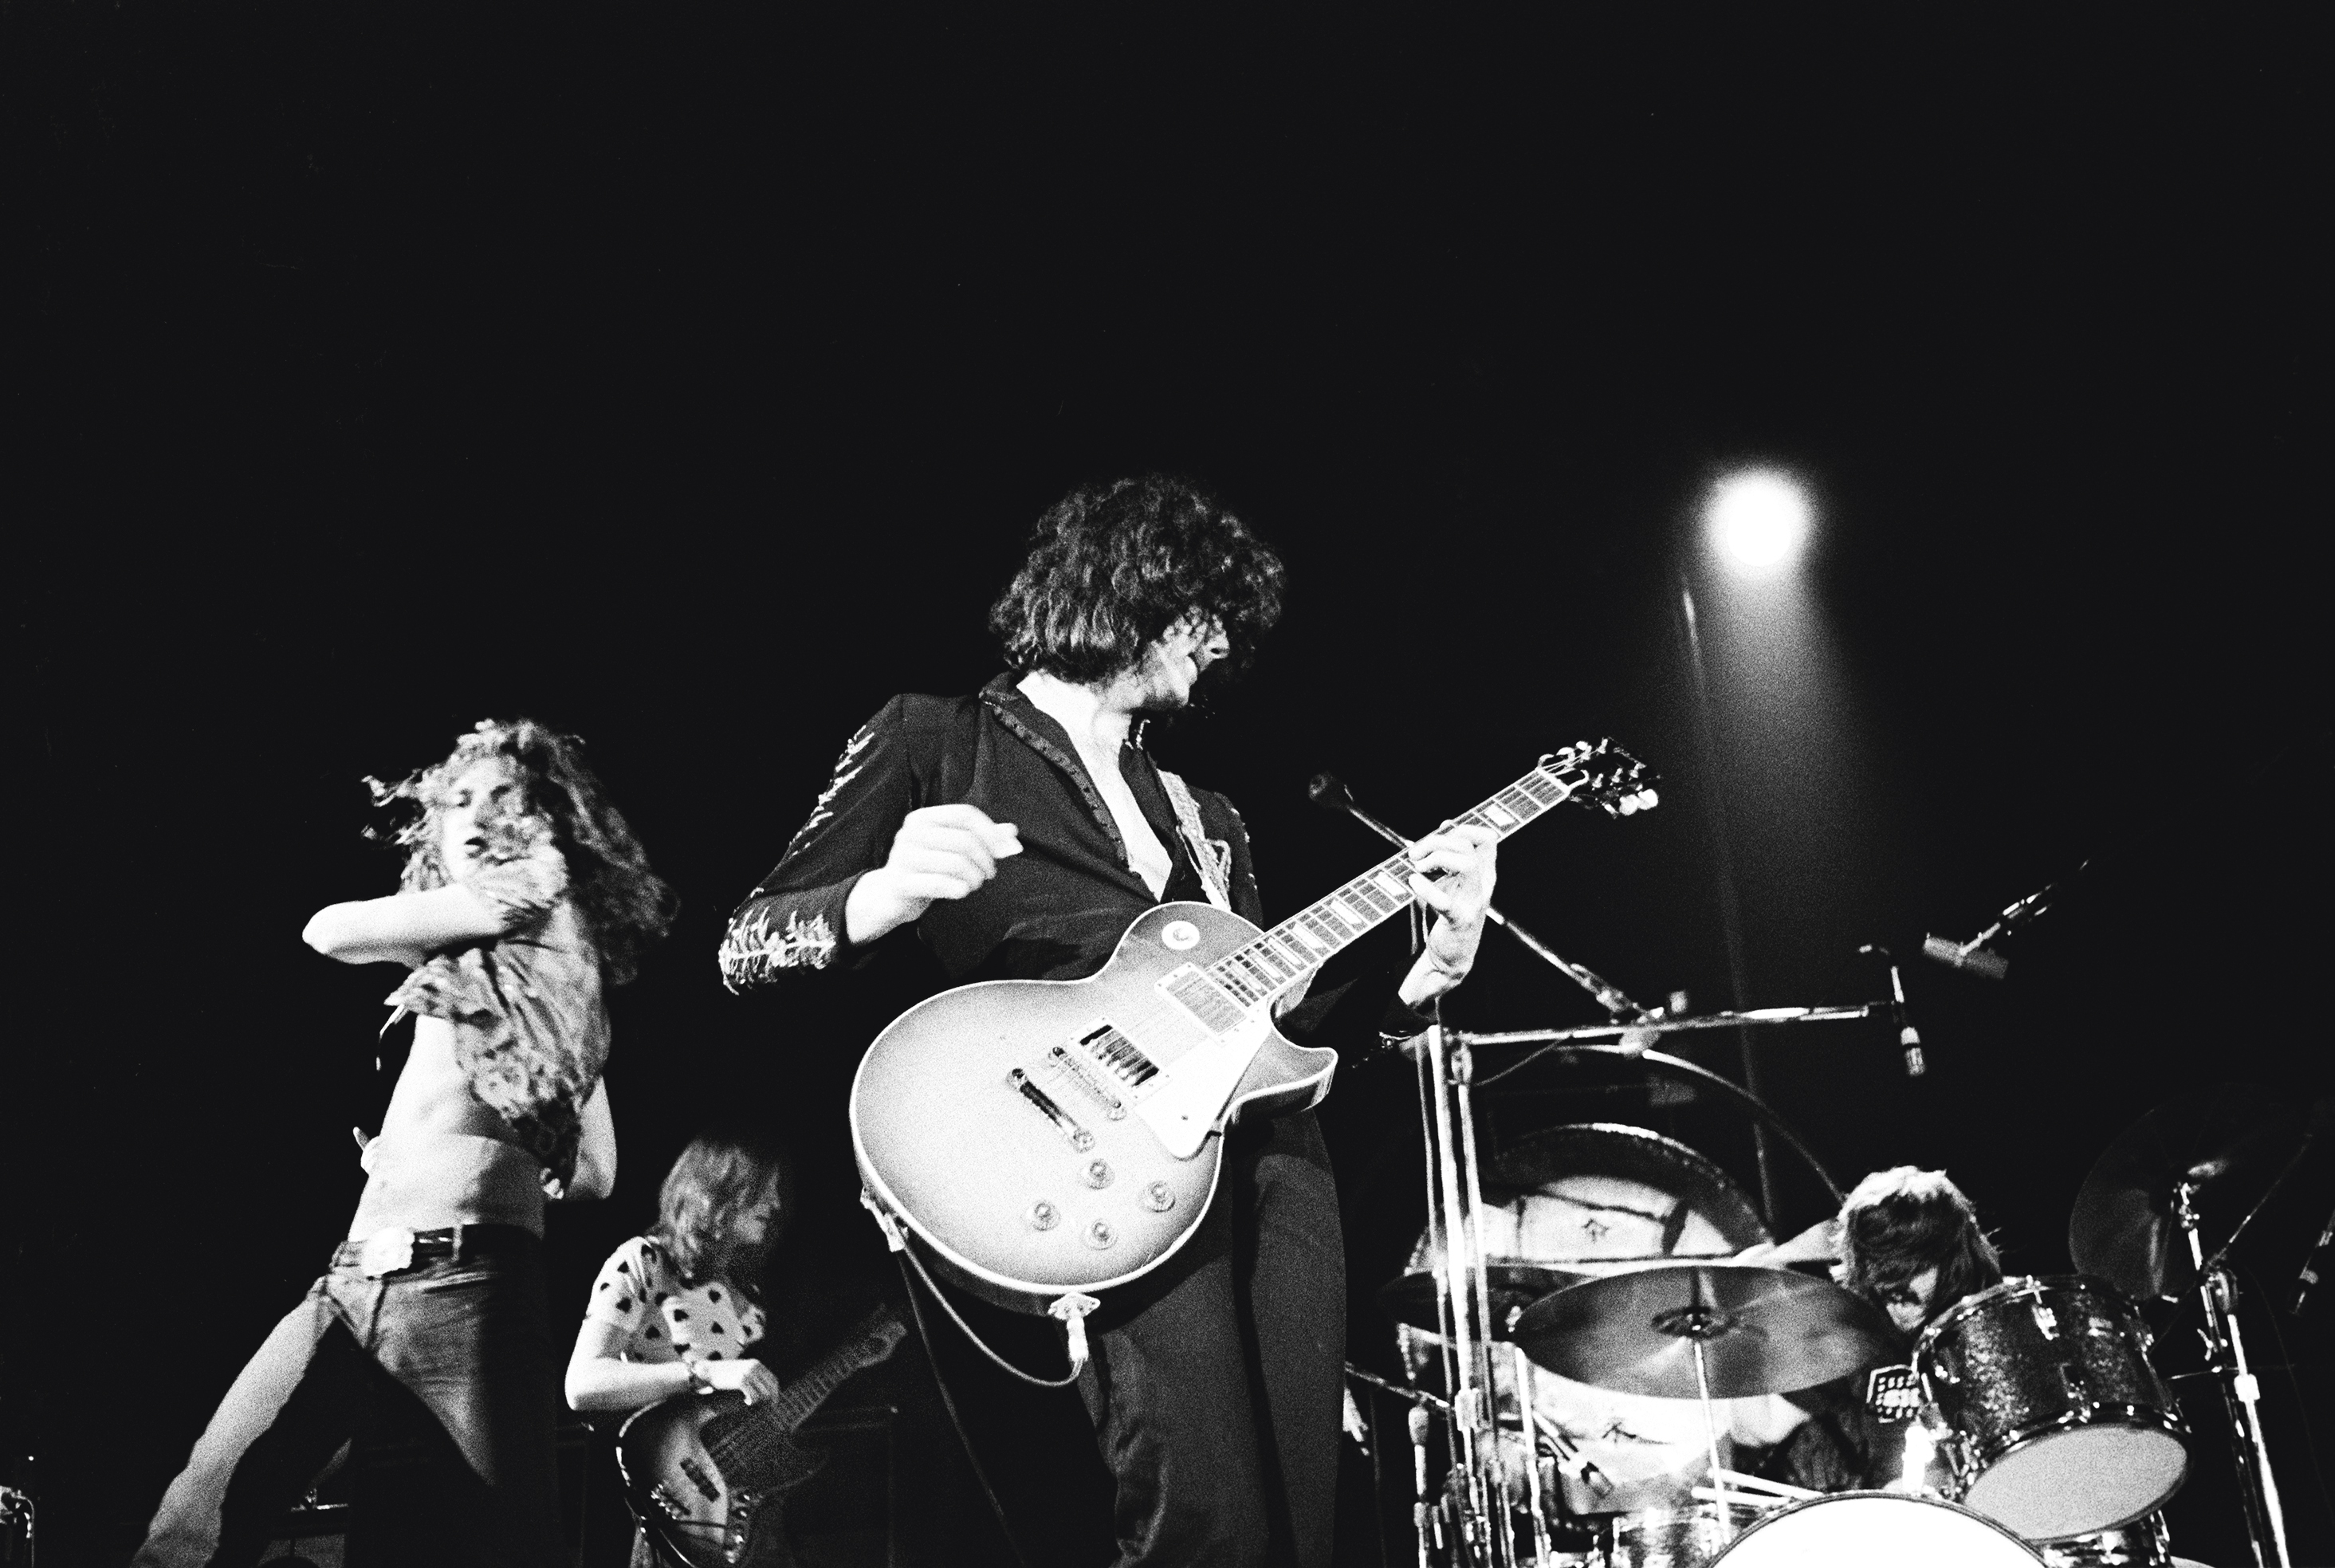 The Train Stopped Rollin': Led Zeppelins letzte Show mit Bonham